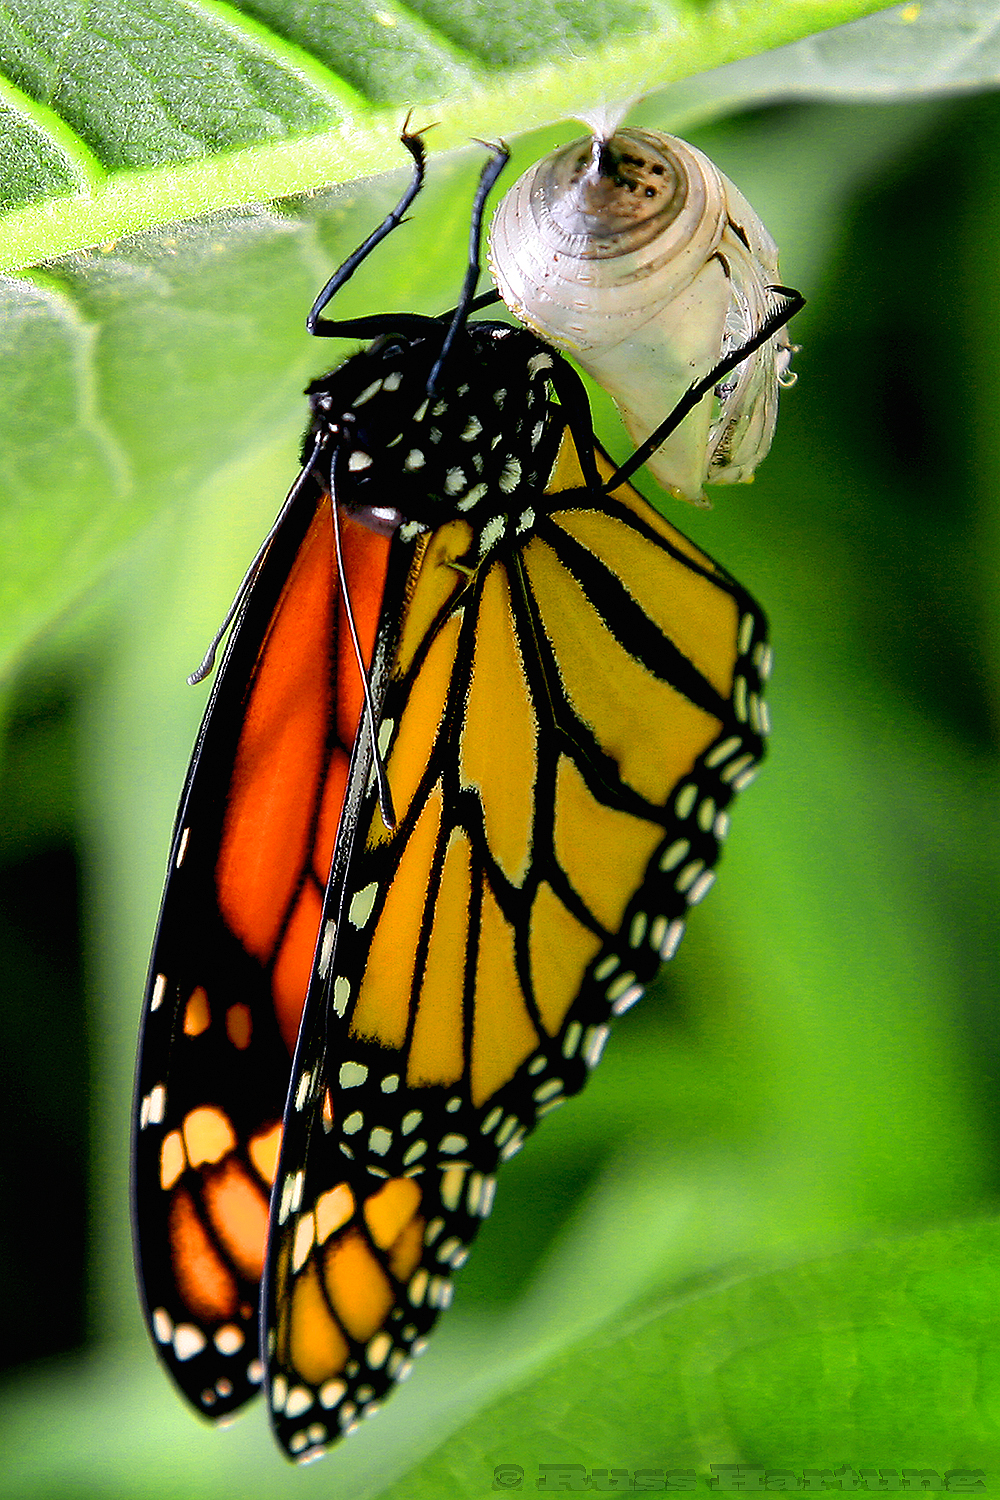 Monarch Butterfly minutes after emerging from a chrysalis.